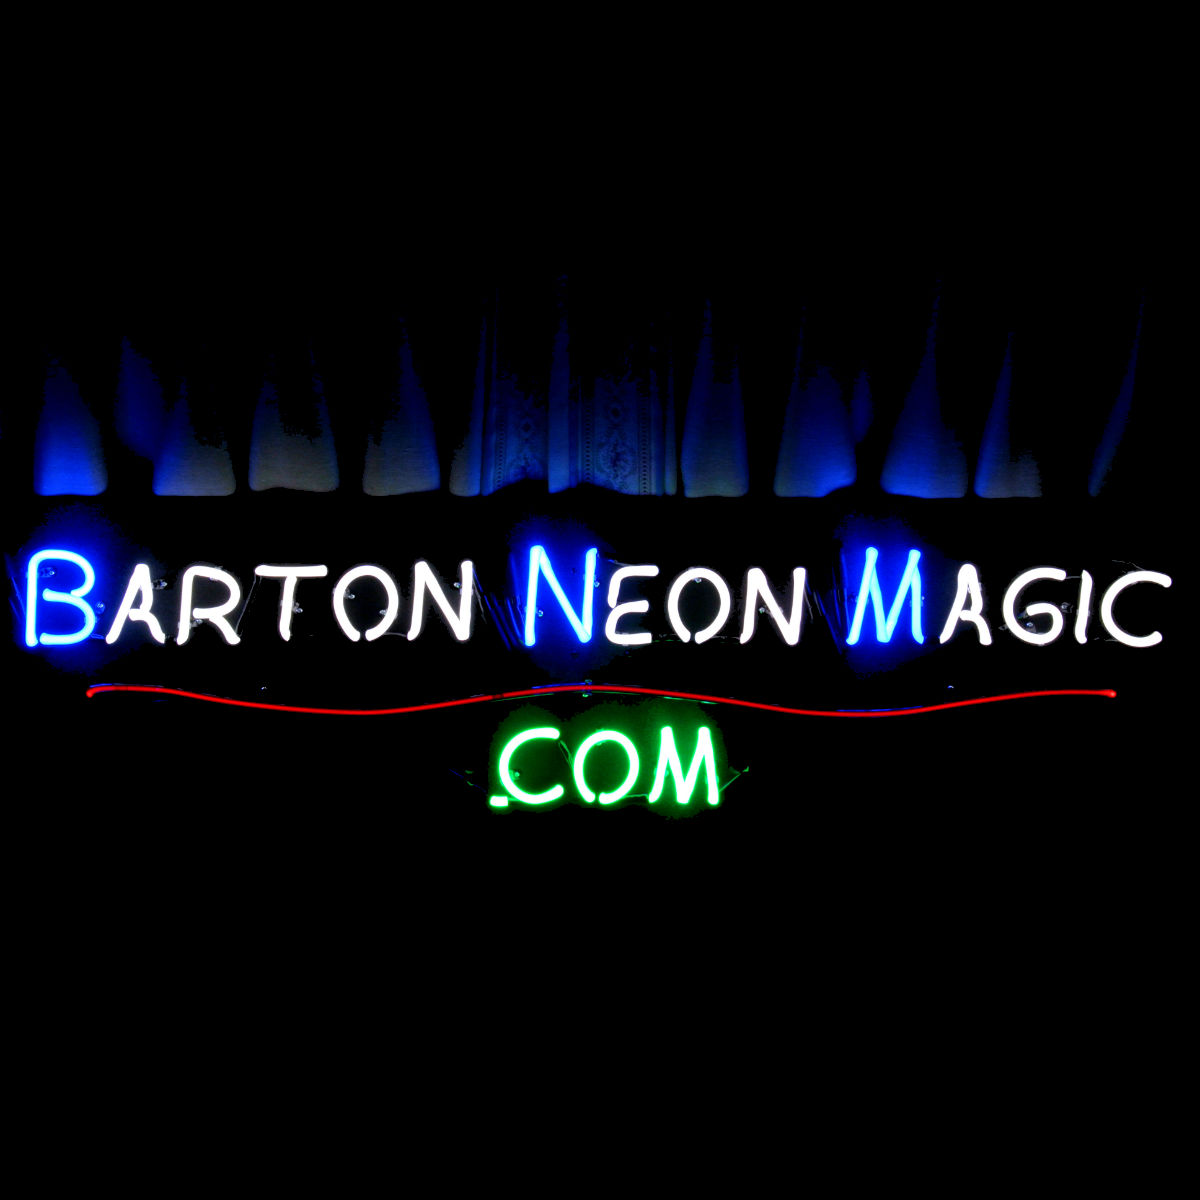 Ultra-Modern Designer Neon Light Sculptures by John Barton - Famous USA Neon Glass Artist - BartonNeonMagic.com